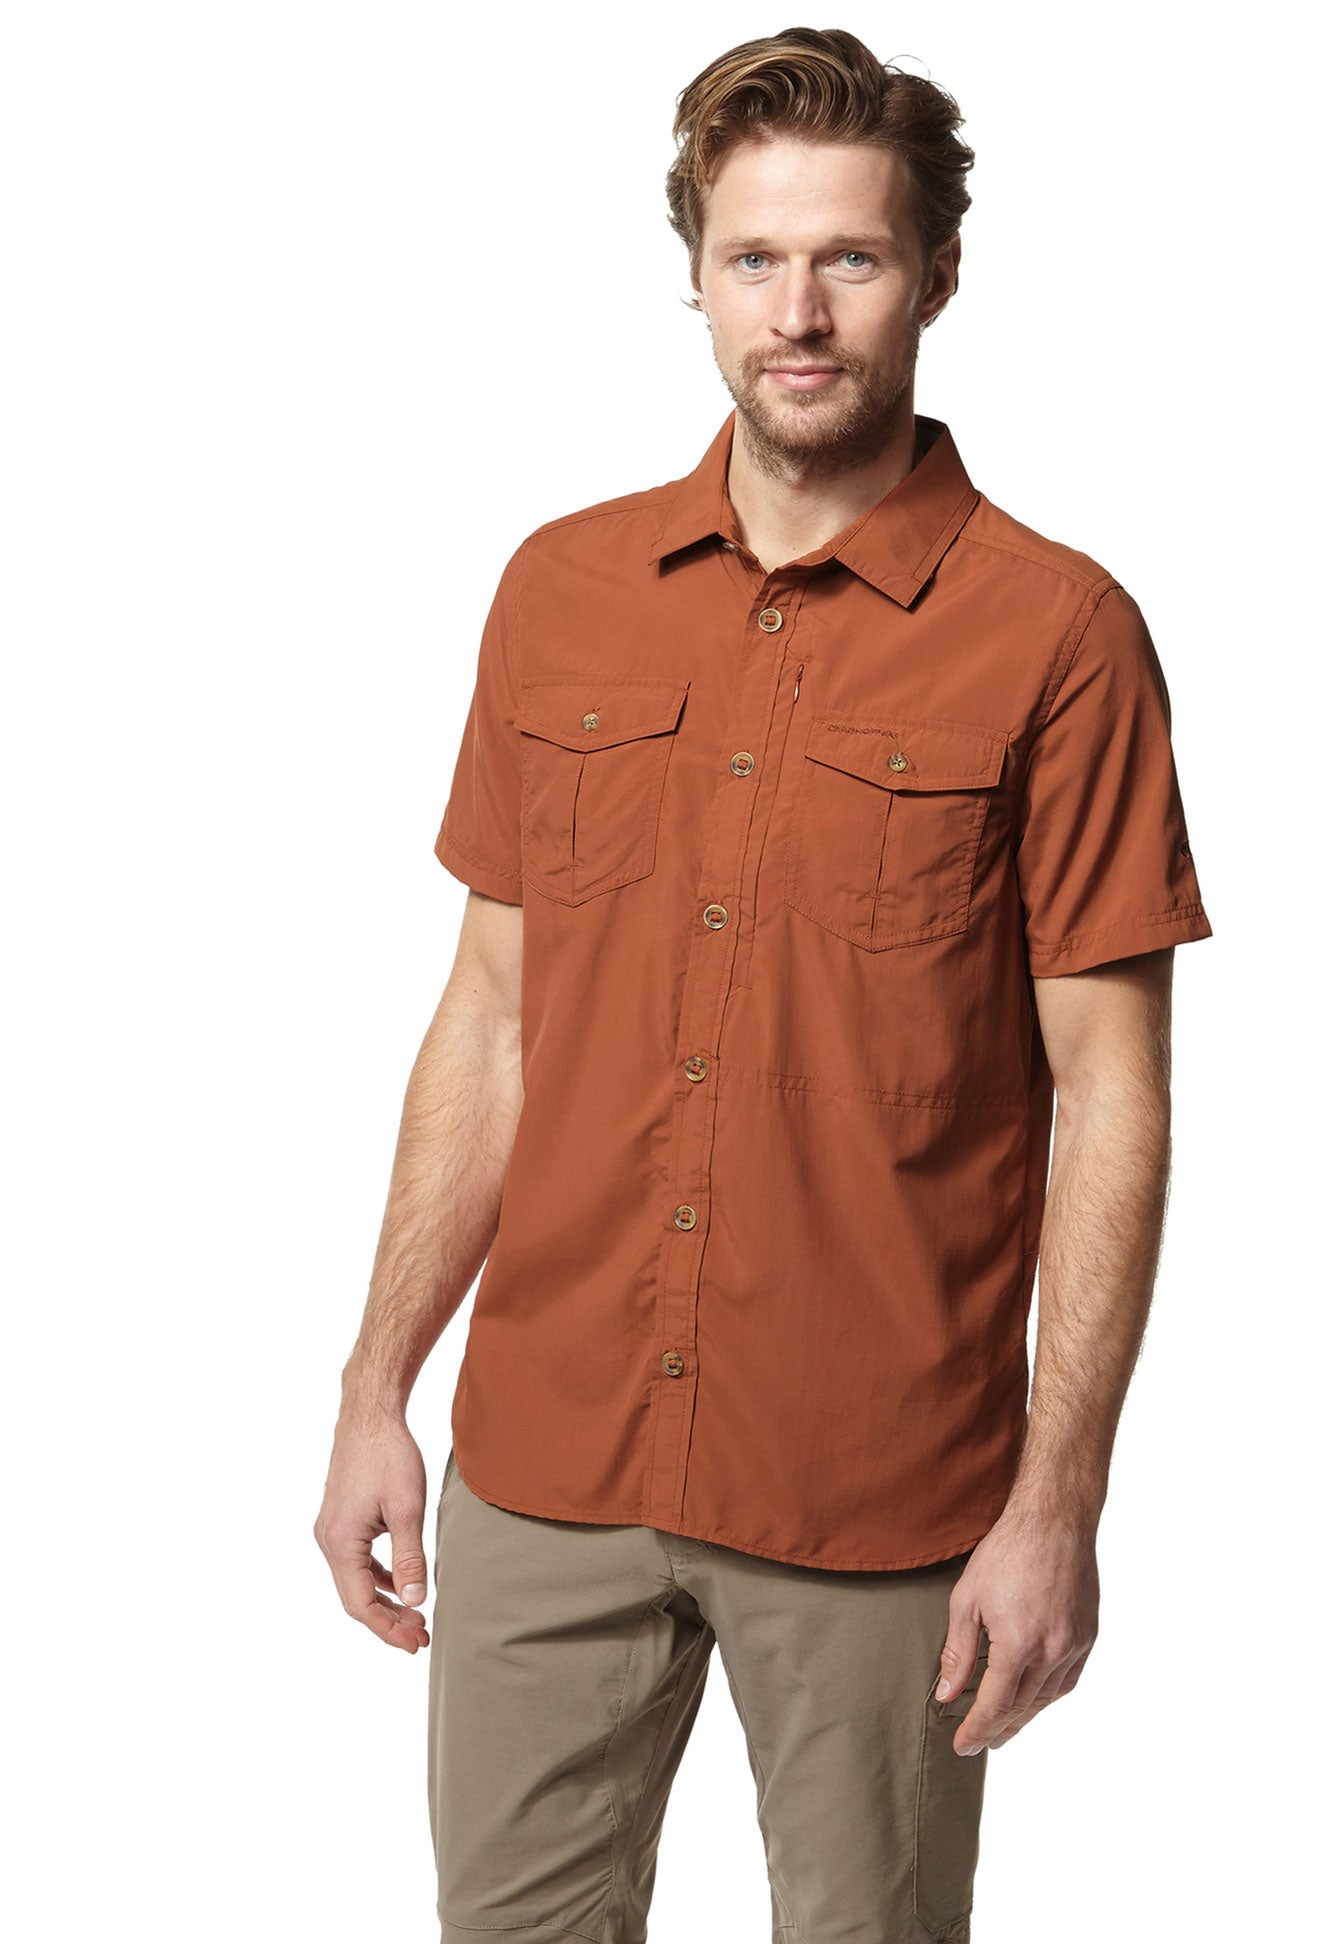 Ginger man wearing Adventure II Short Sleeve Shirt by Craghoppers